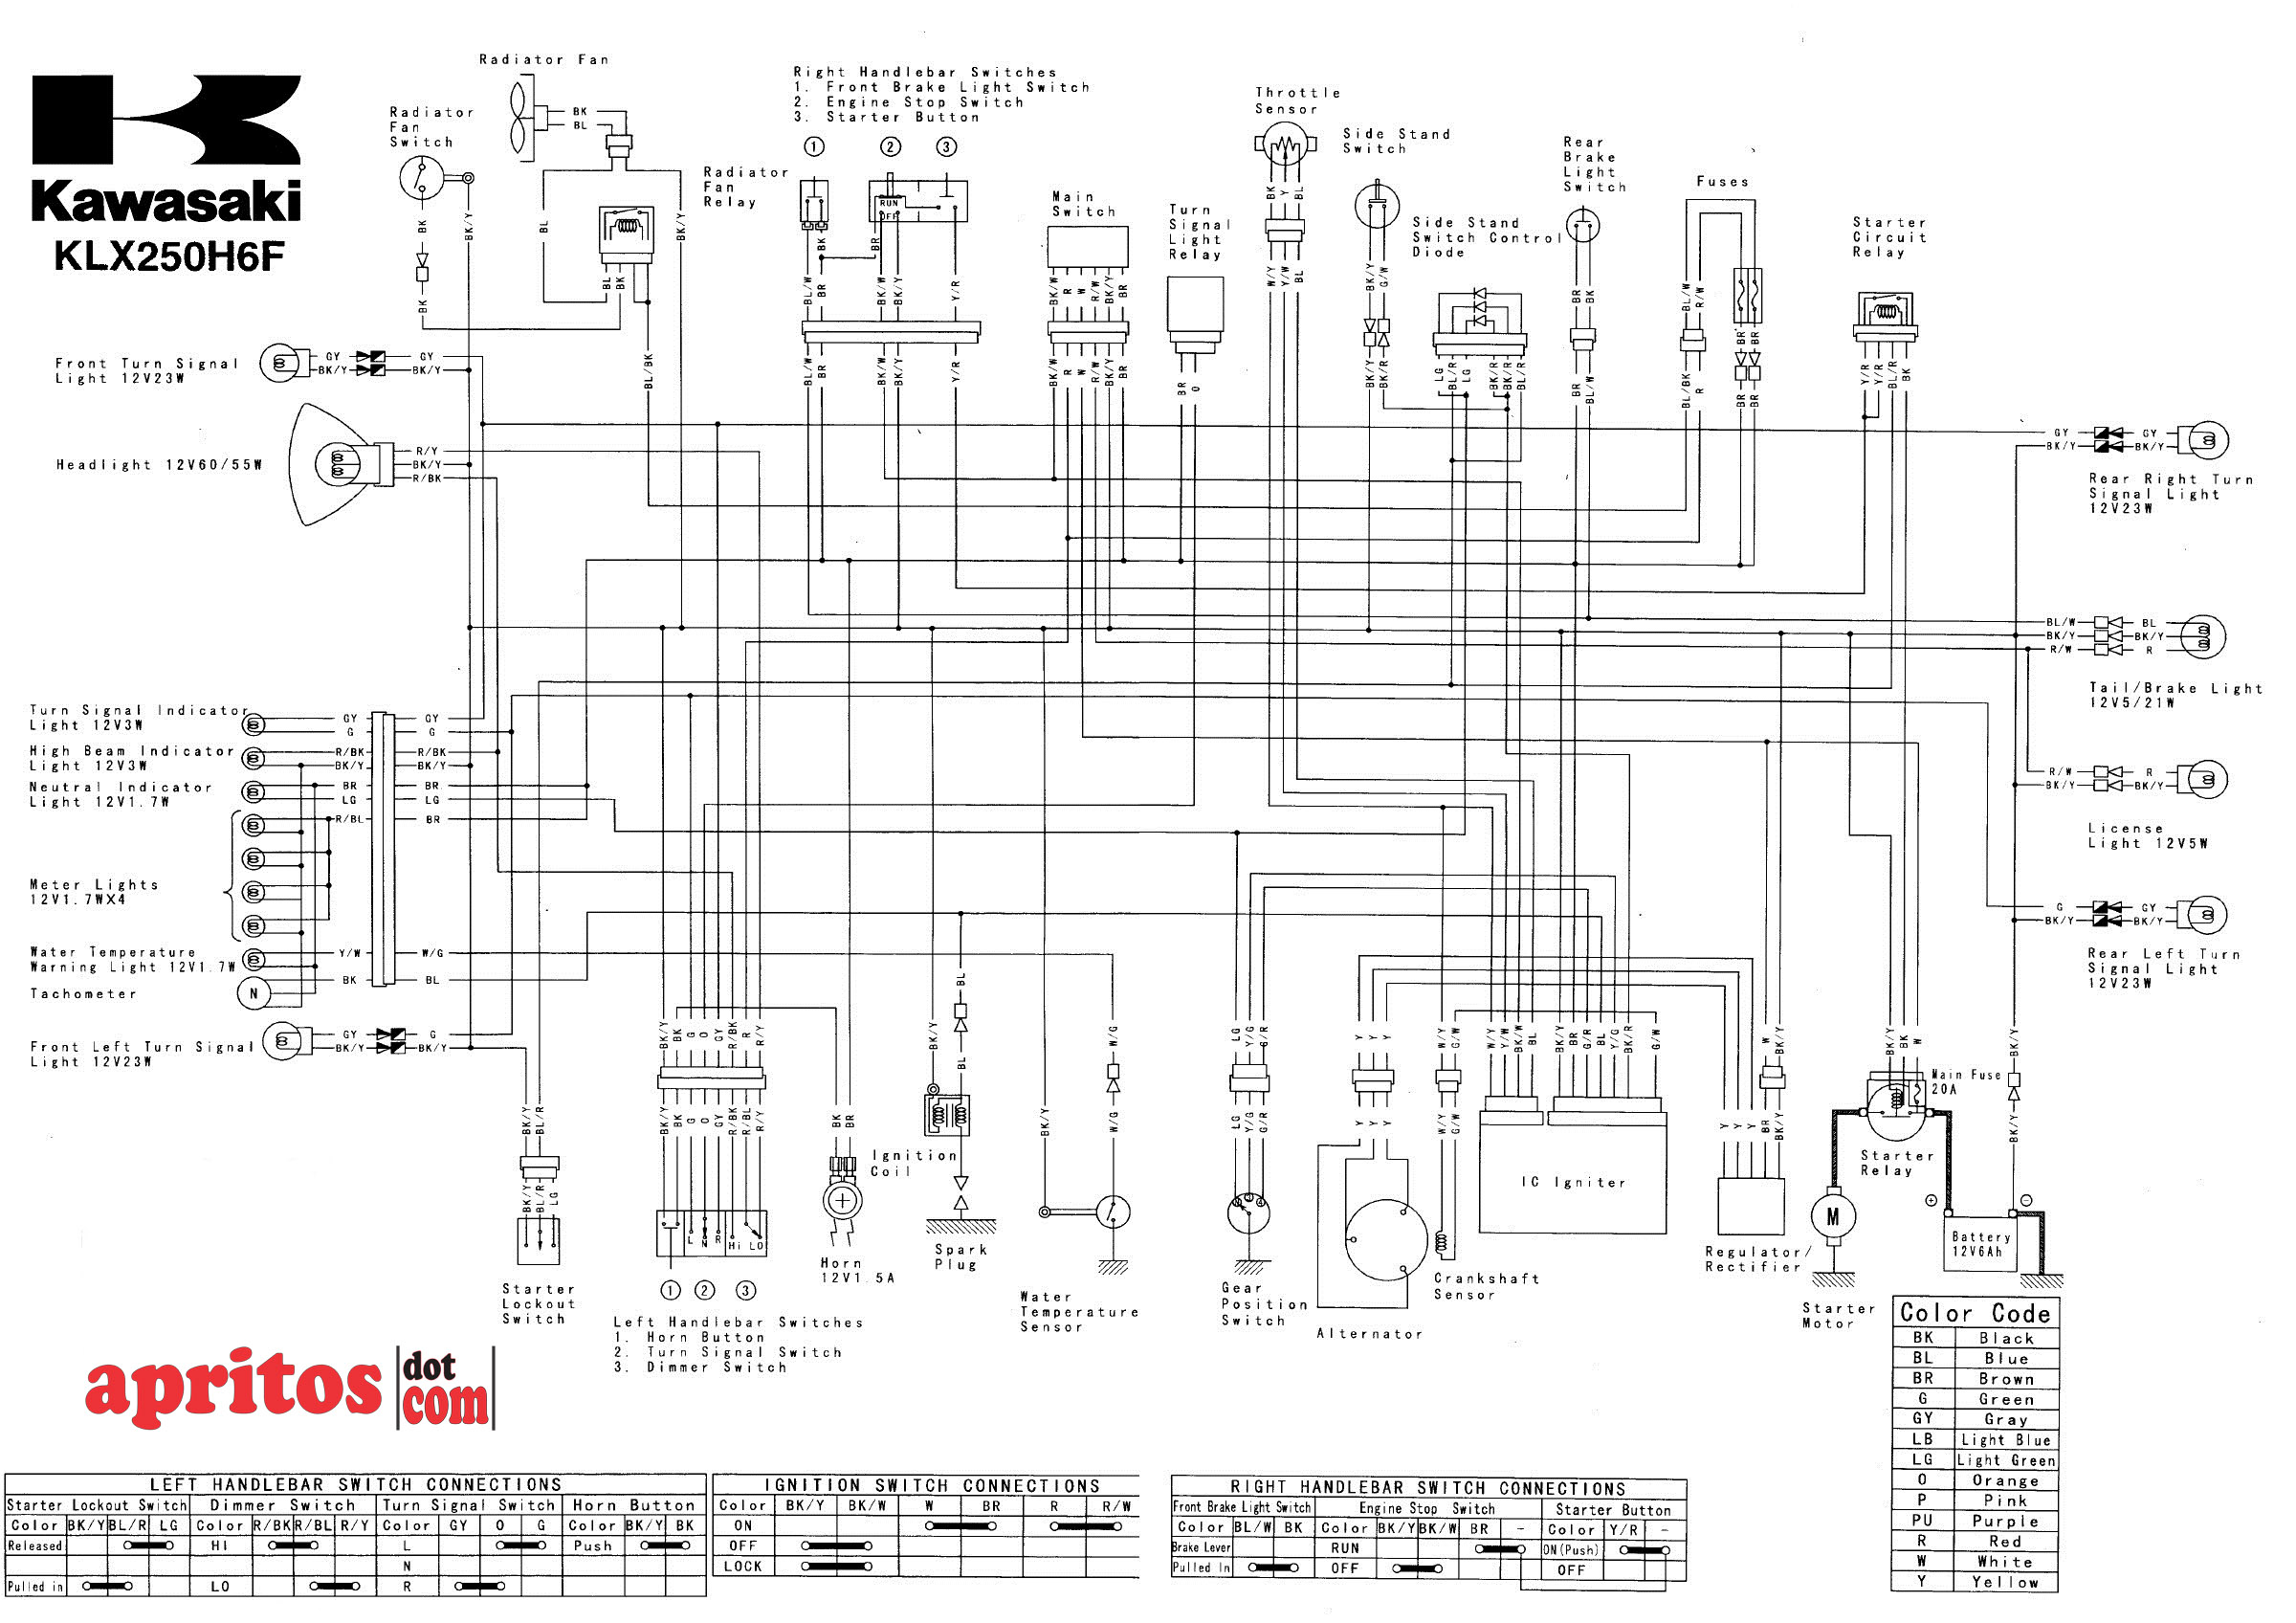 93E46 Klt 250 Wiring Diagram | Digital Resources 5 pin cdi wiring diagram Digital Resources